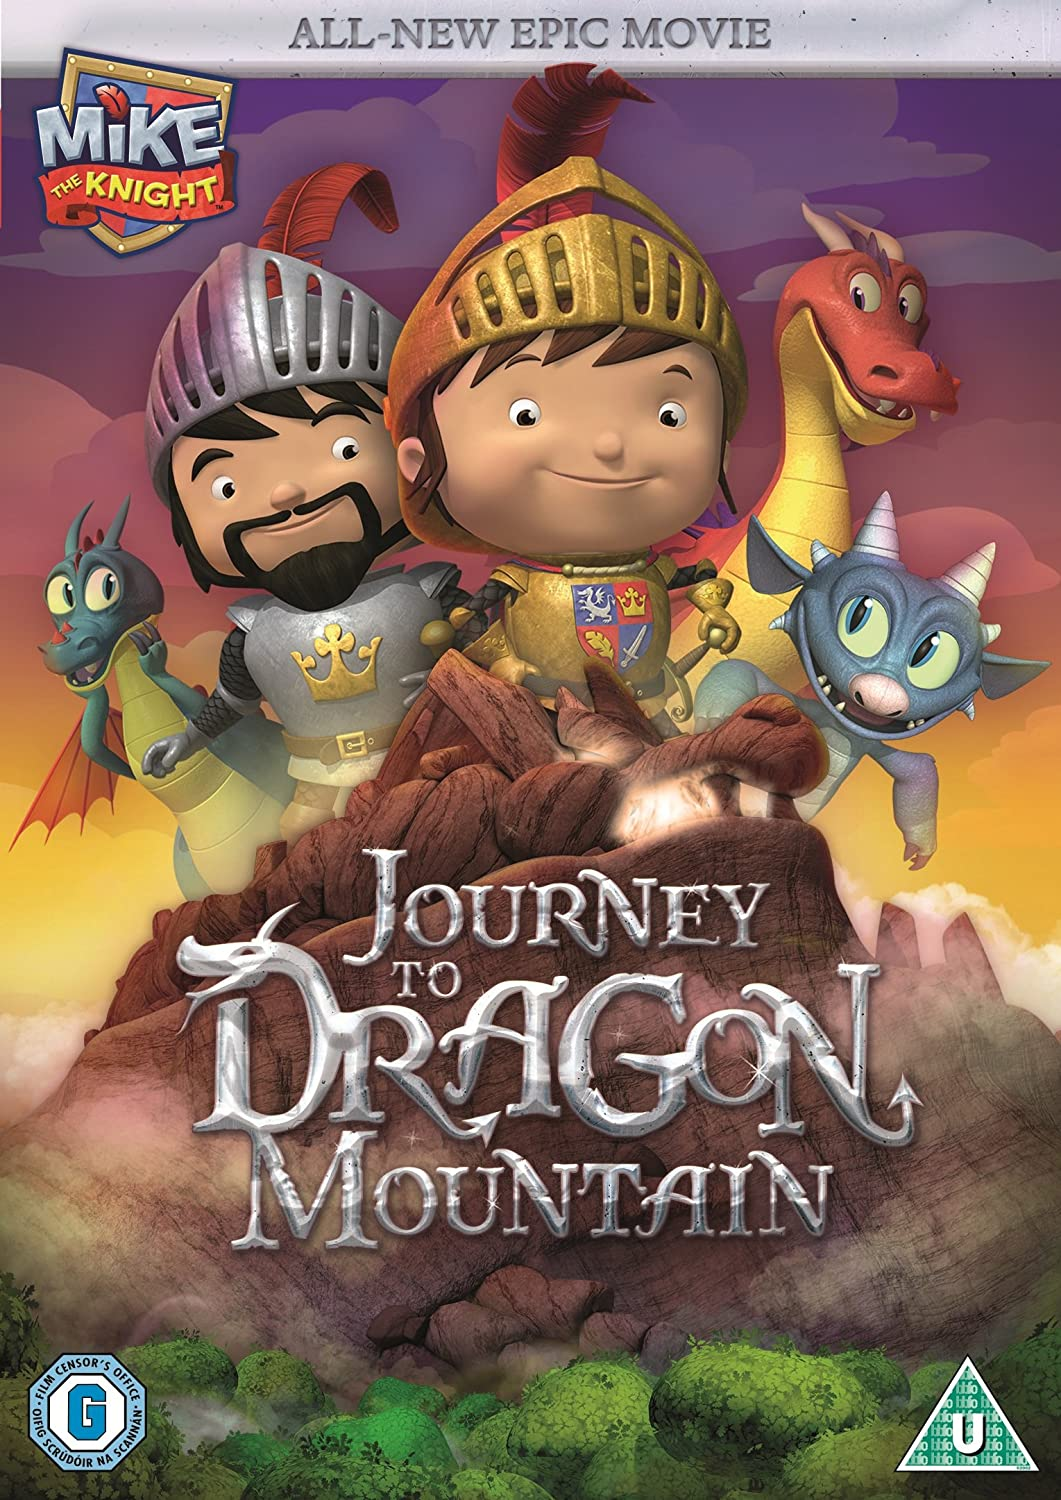 Mike the Knight Journey to Dragon Mountain